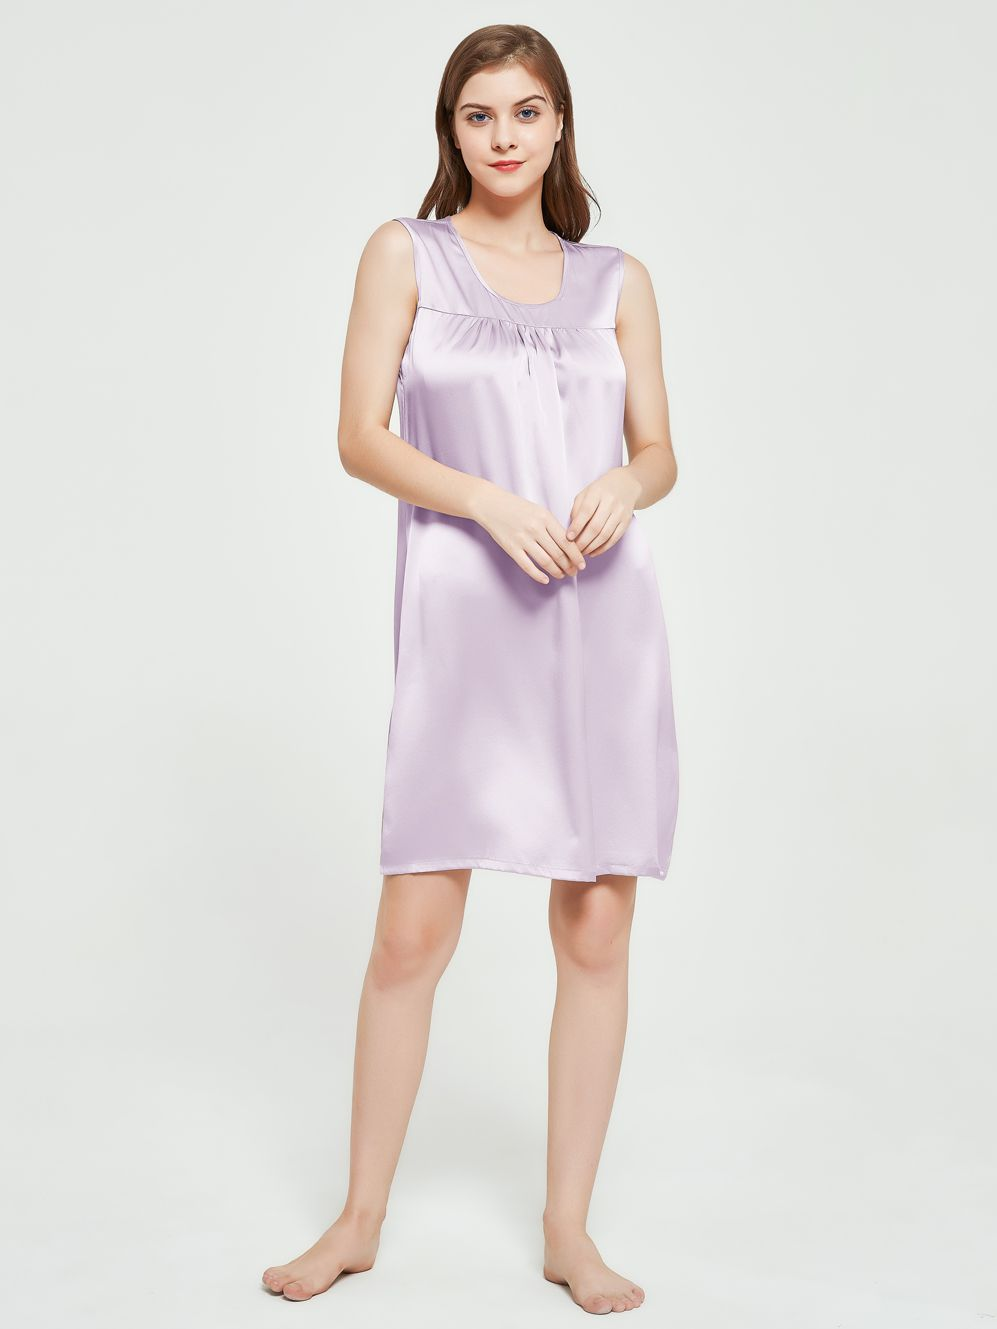 19 Momme Relaxed Sleeveless Basic Silk Nightdress